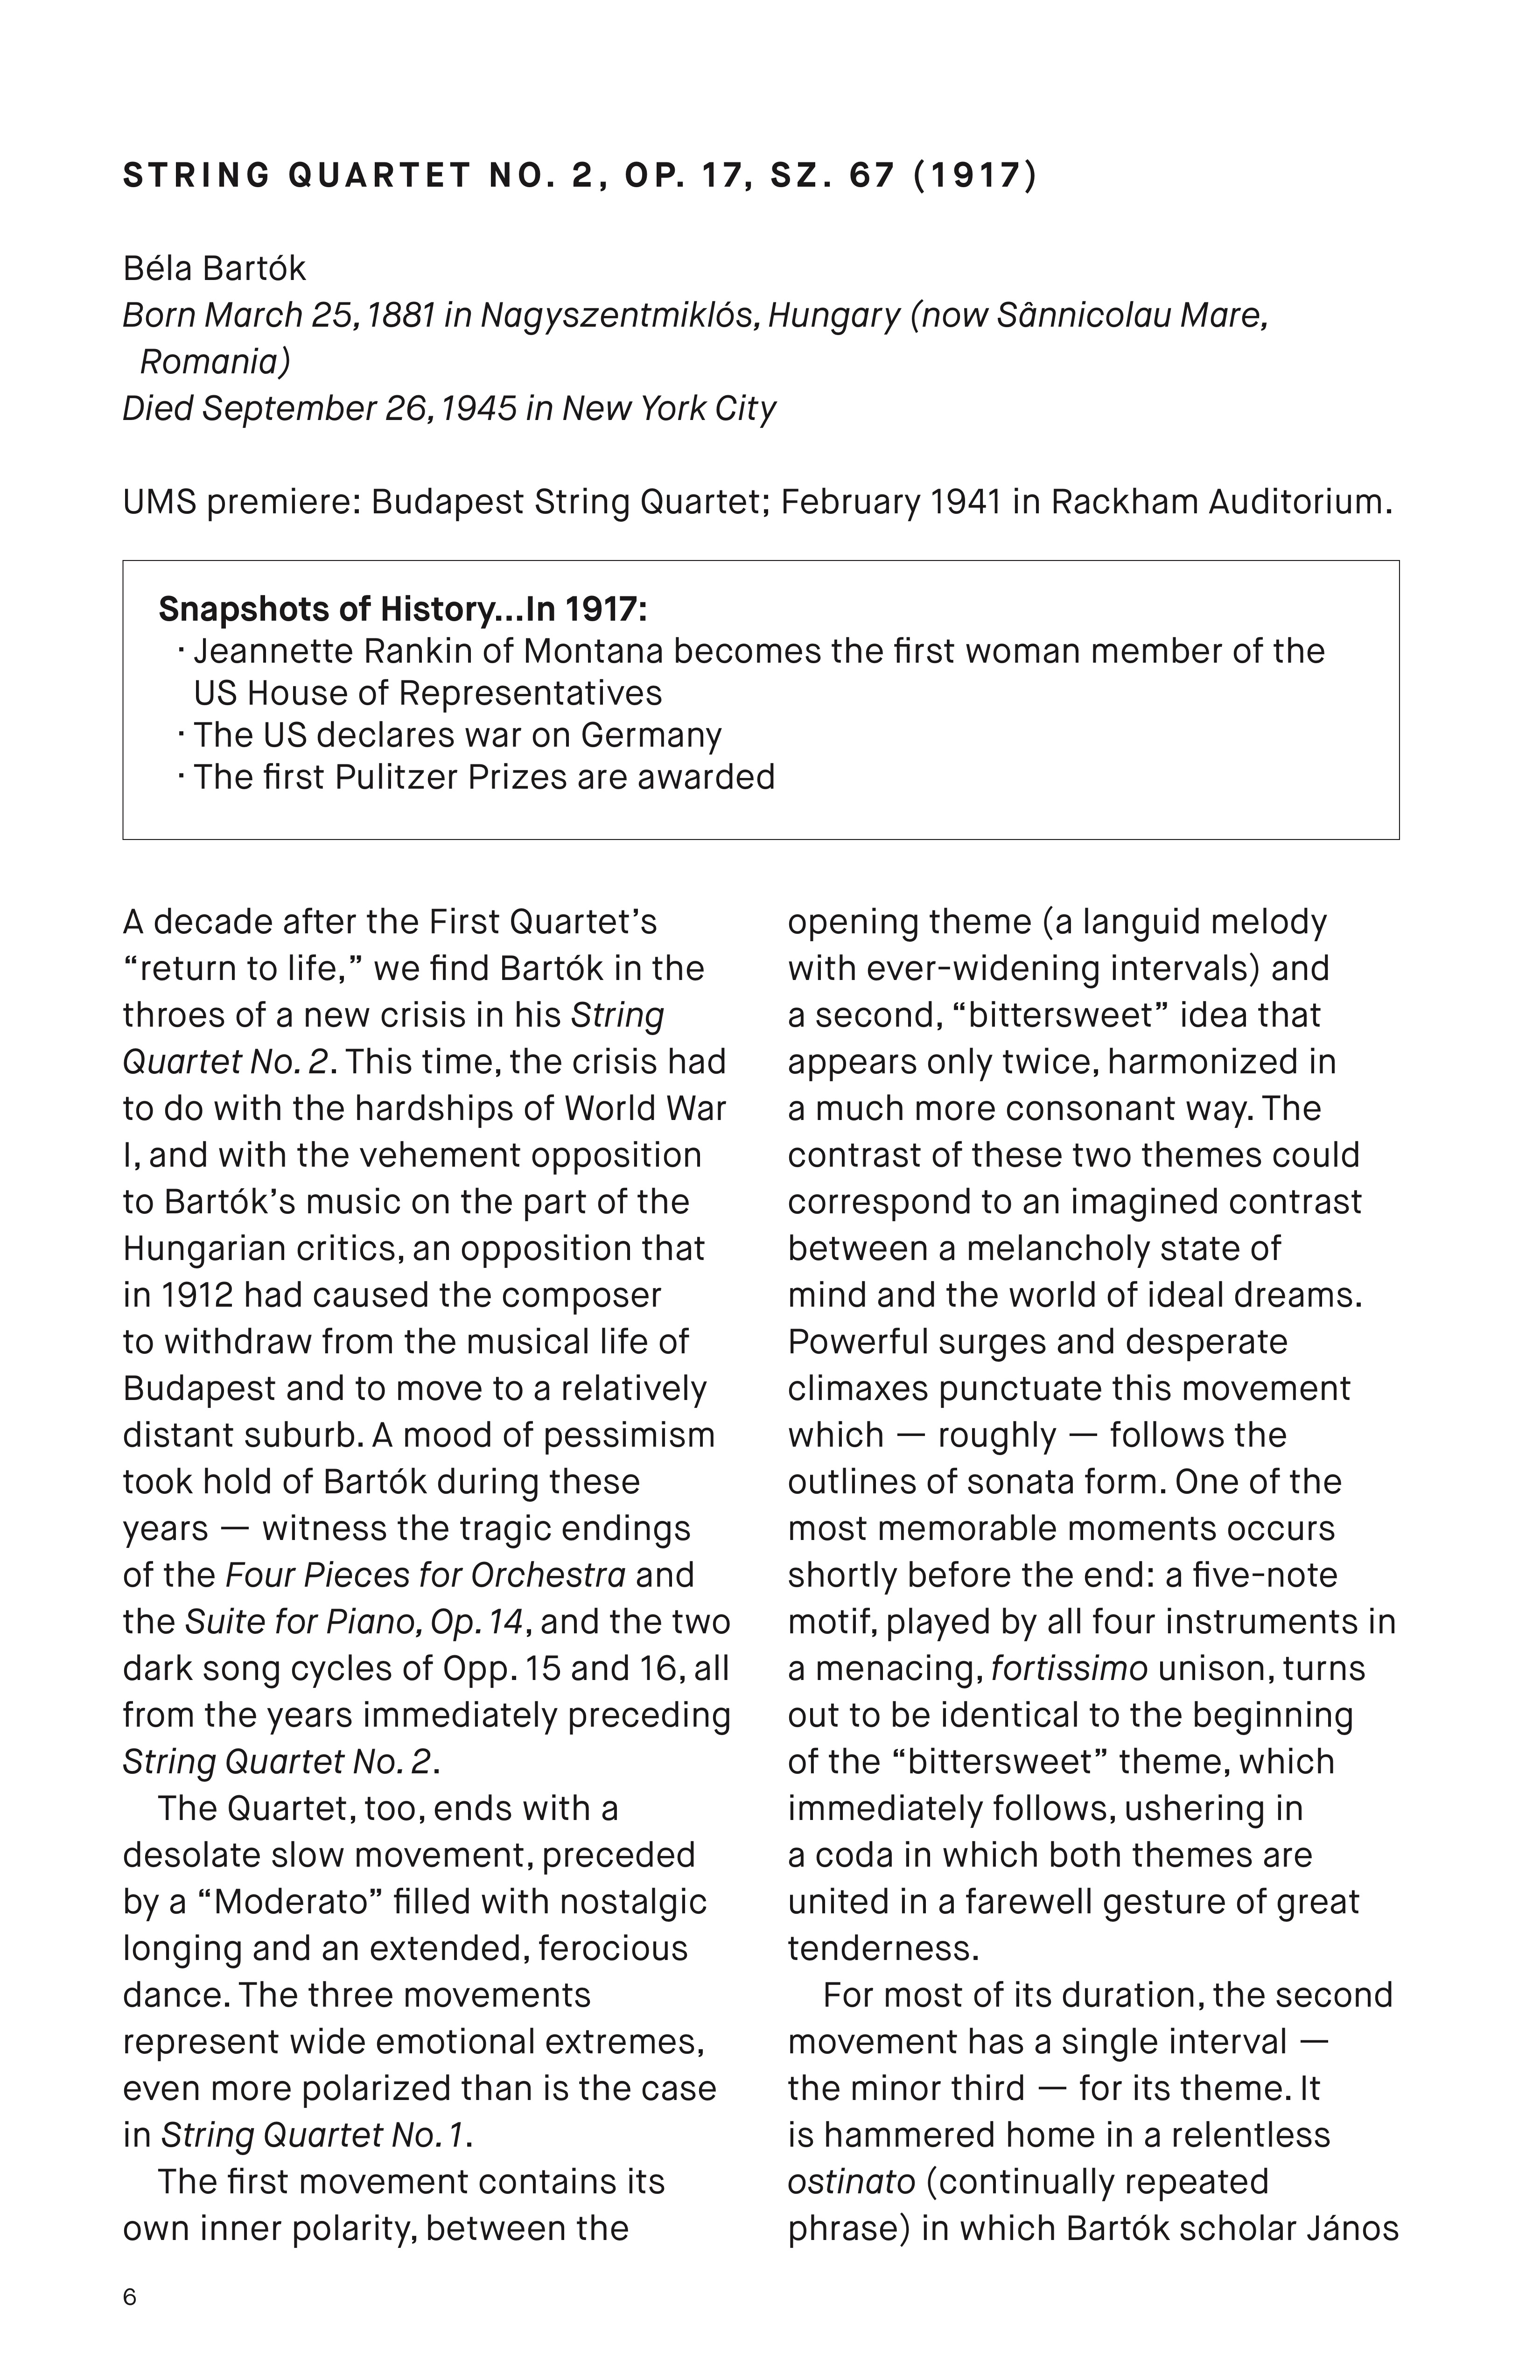 UMS Concert Program, April 8, 2018 - Artemis Quartet image